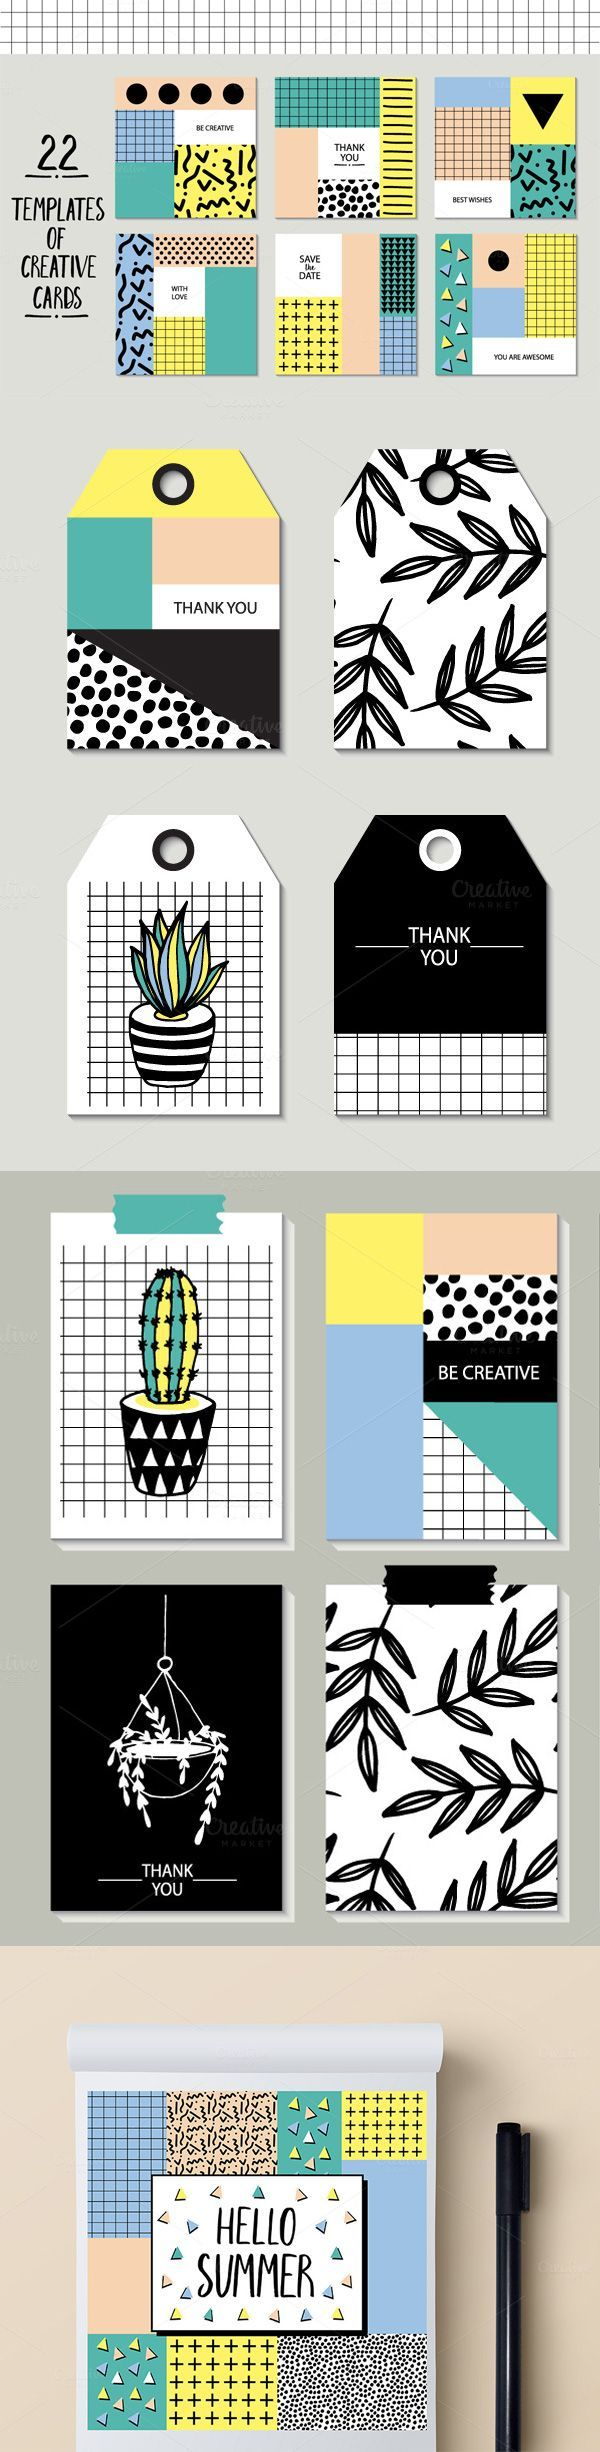 best ideas about gift card template photographer 22 templates of creative cards 80s